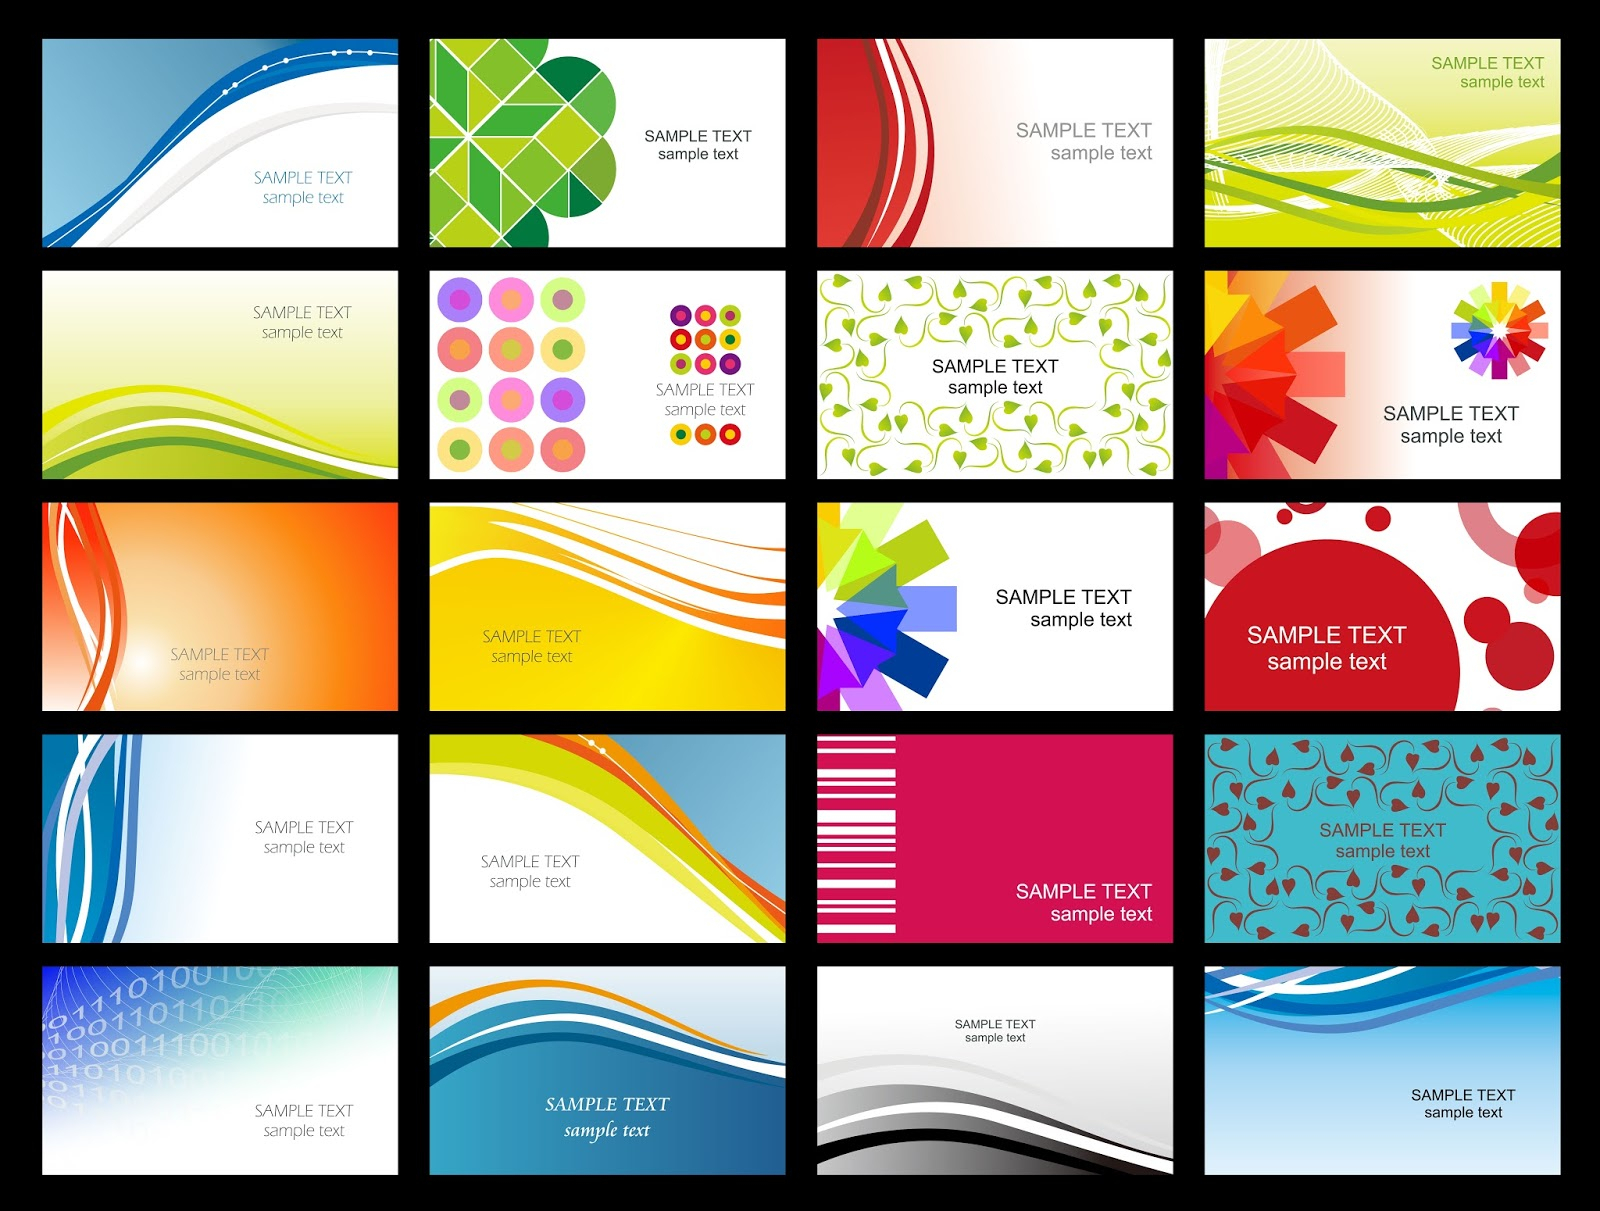 Printable Business Card Template - Business Card Tips Intended For Free Editable Printable Business Card Templates